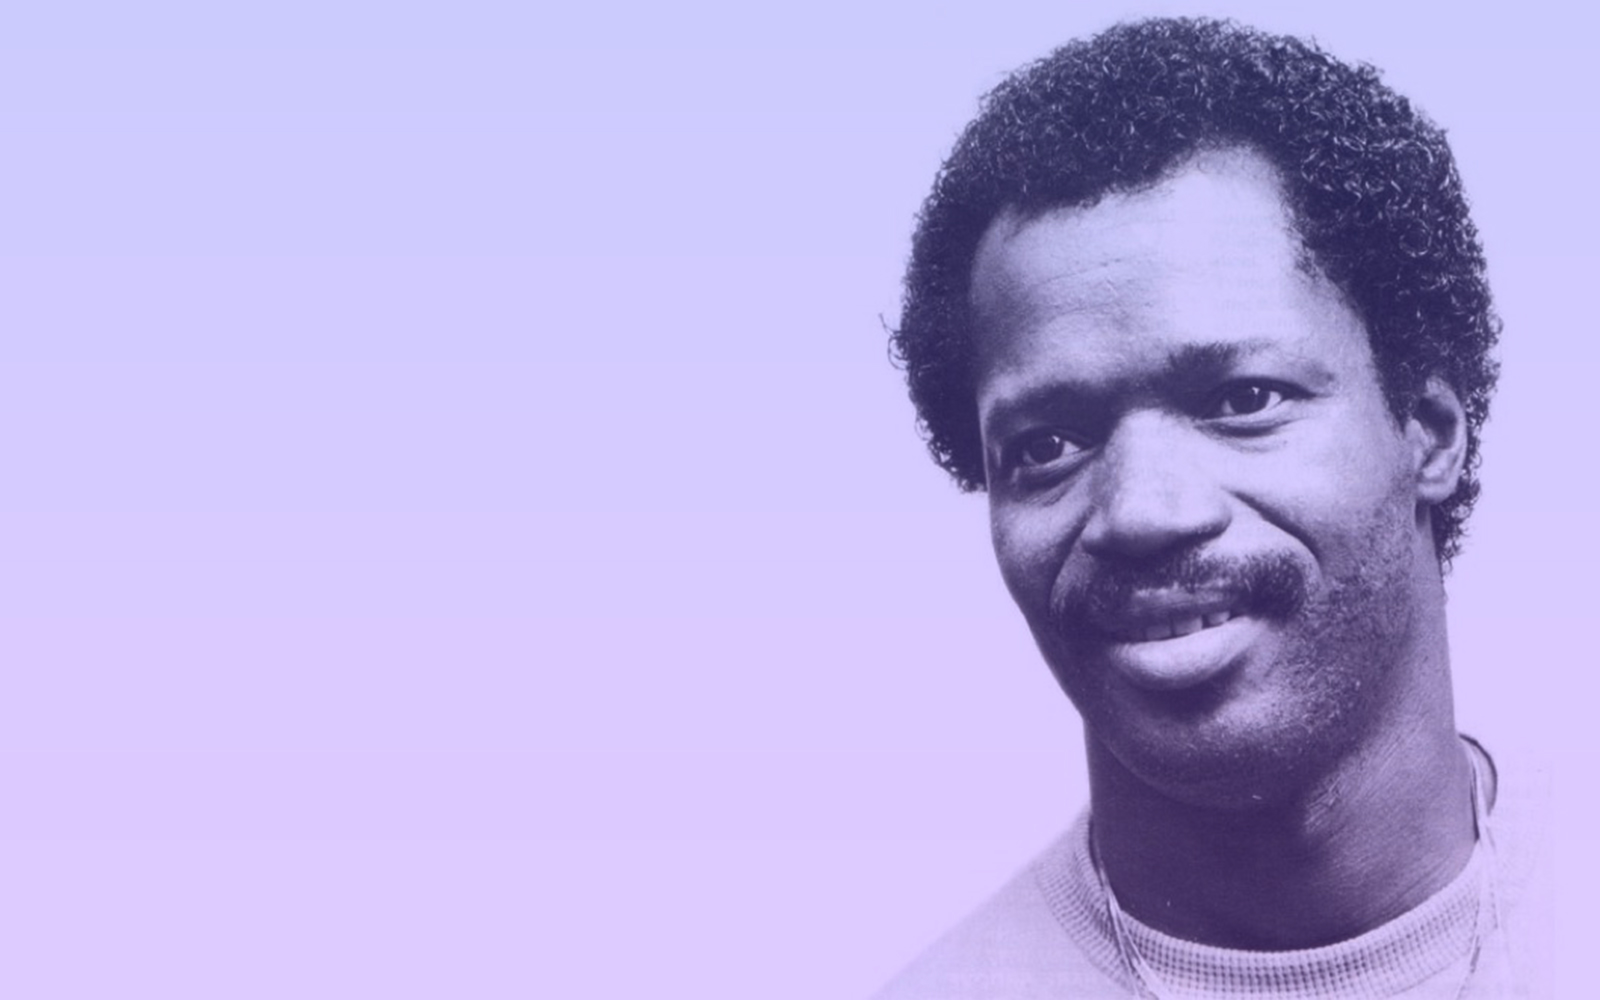 Leroy Burgess' 10 favourite slow jams from the '70s and '80s